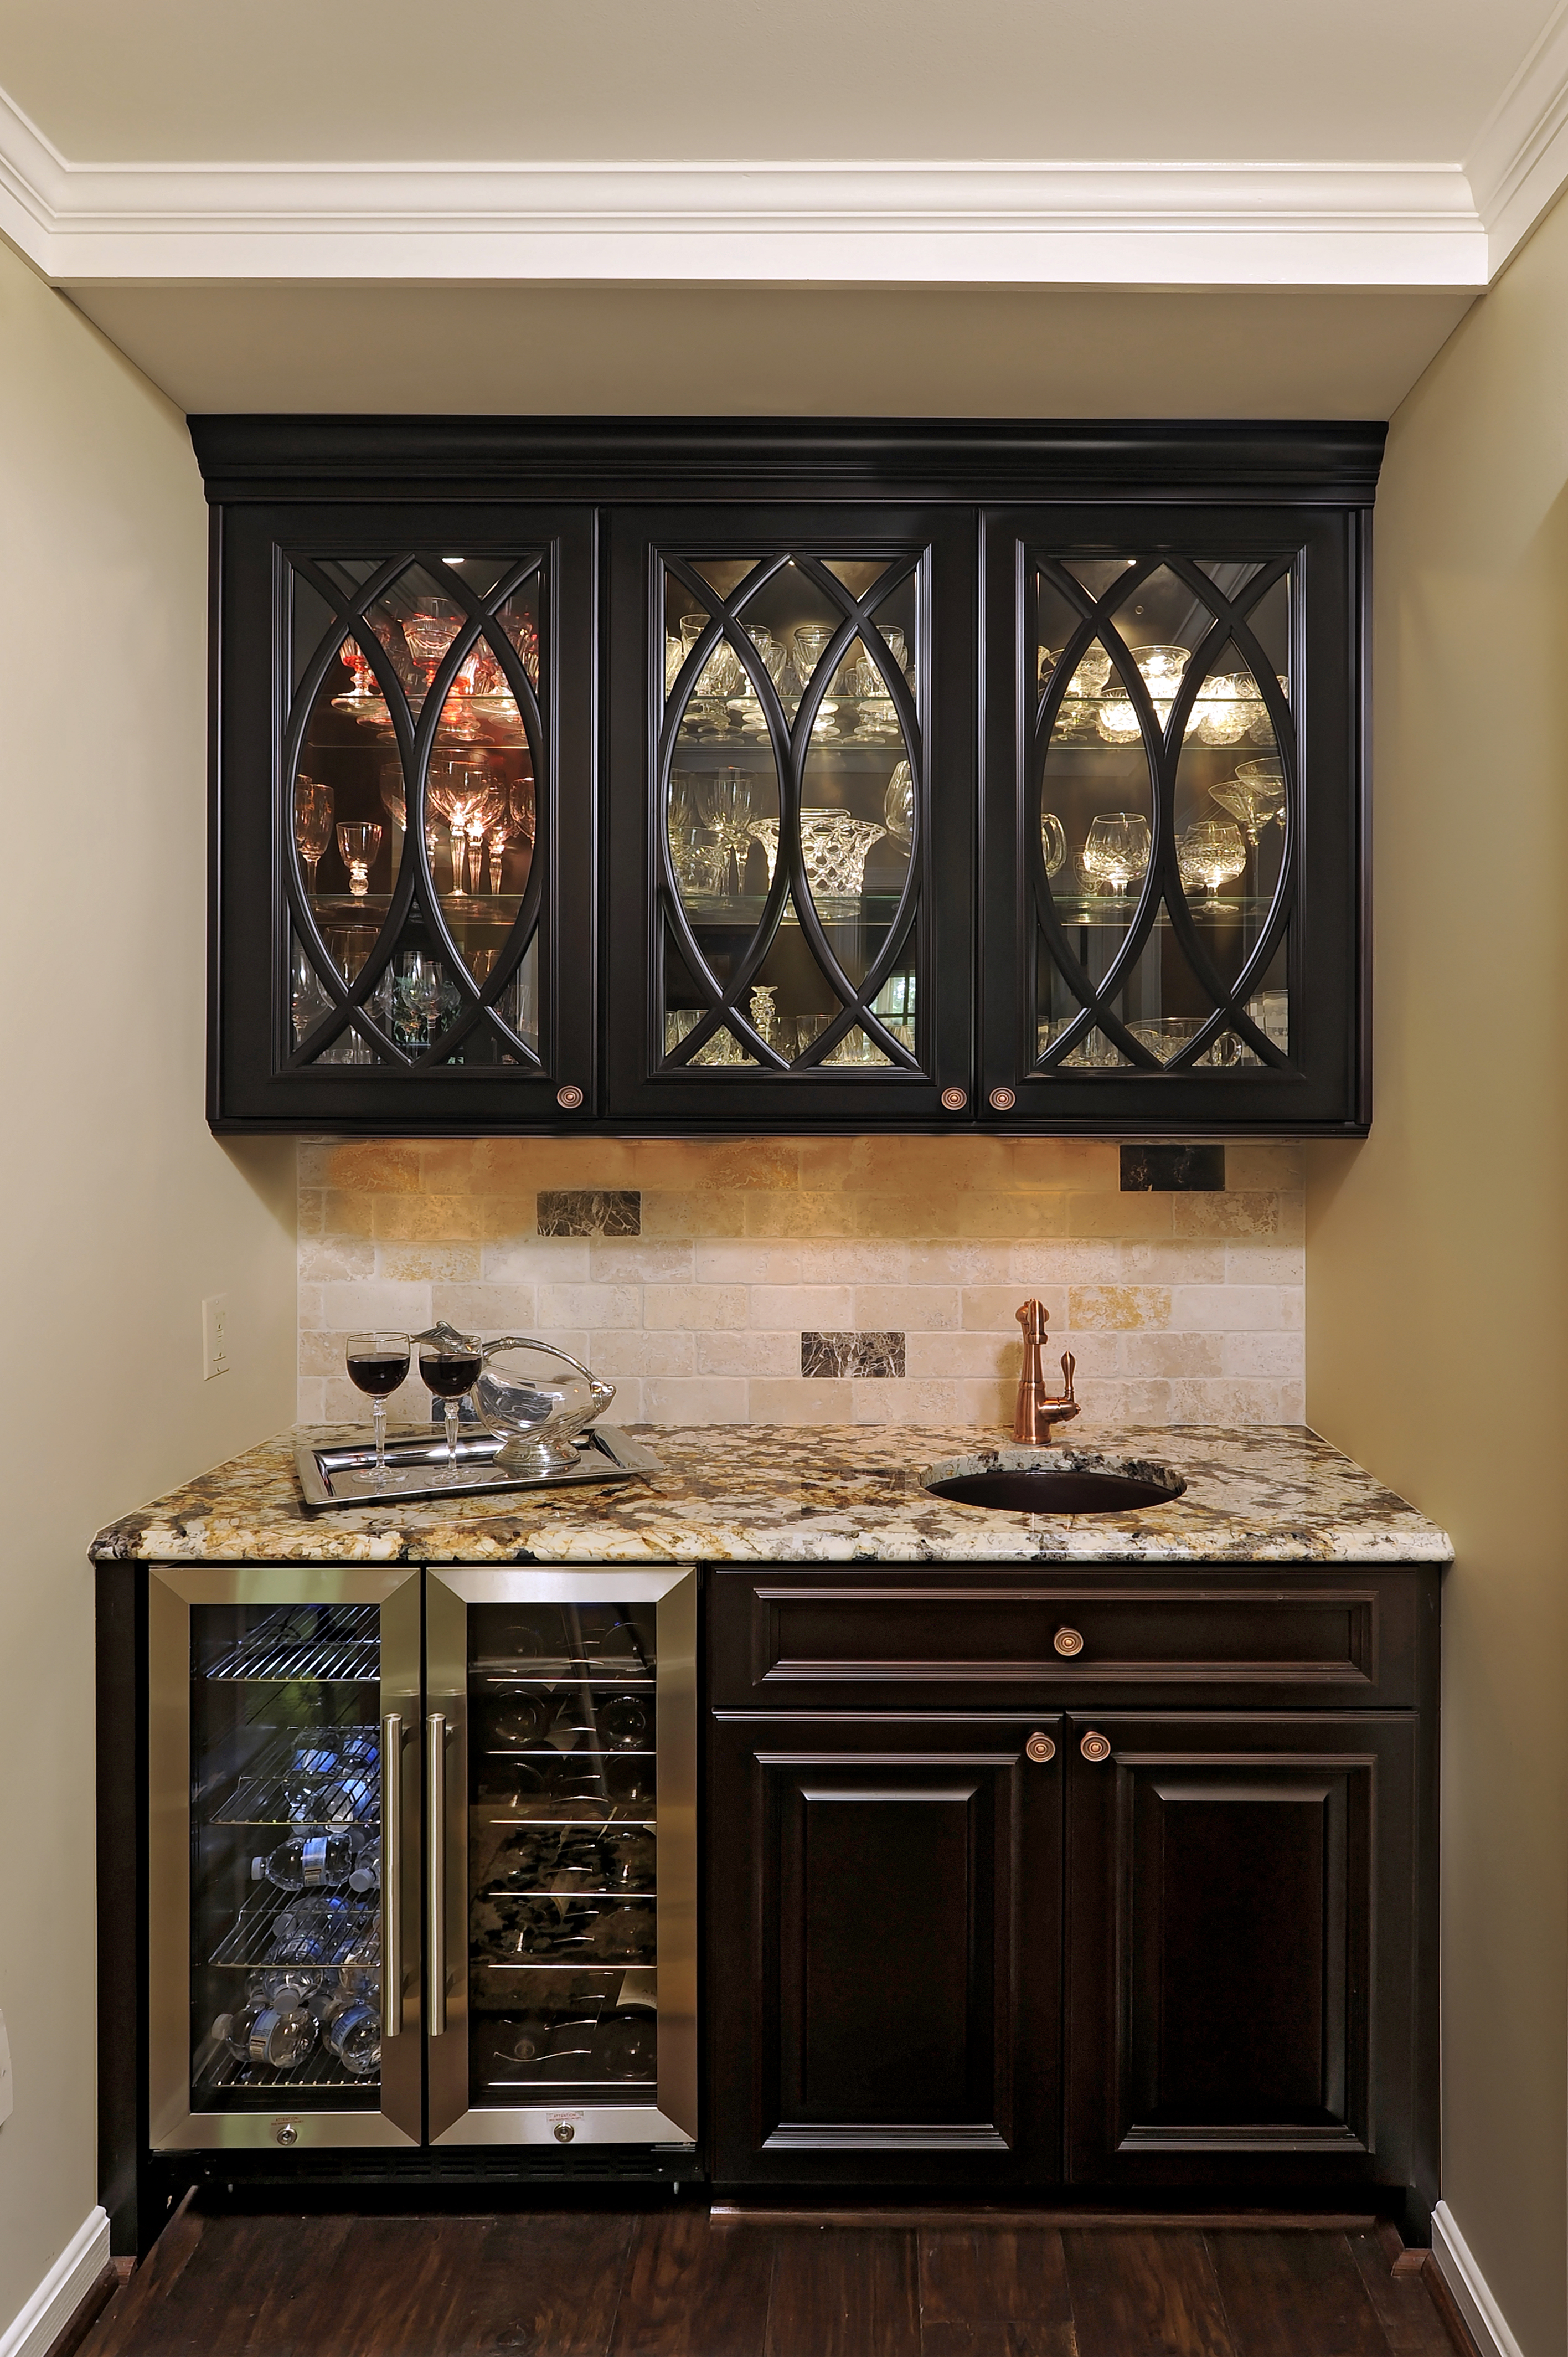 Old World Kitchen - Cabinets by Graber